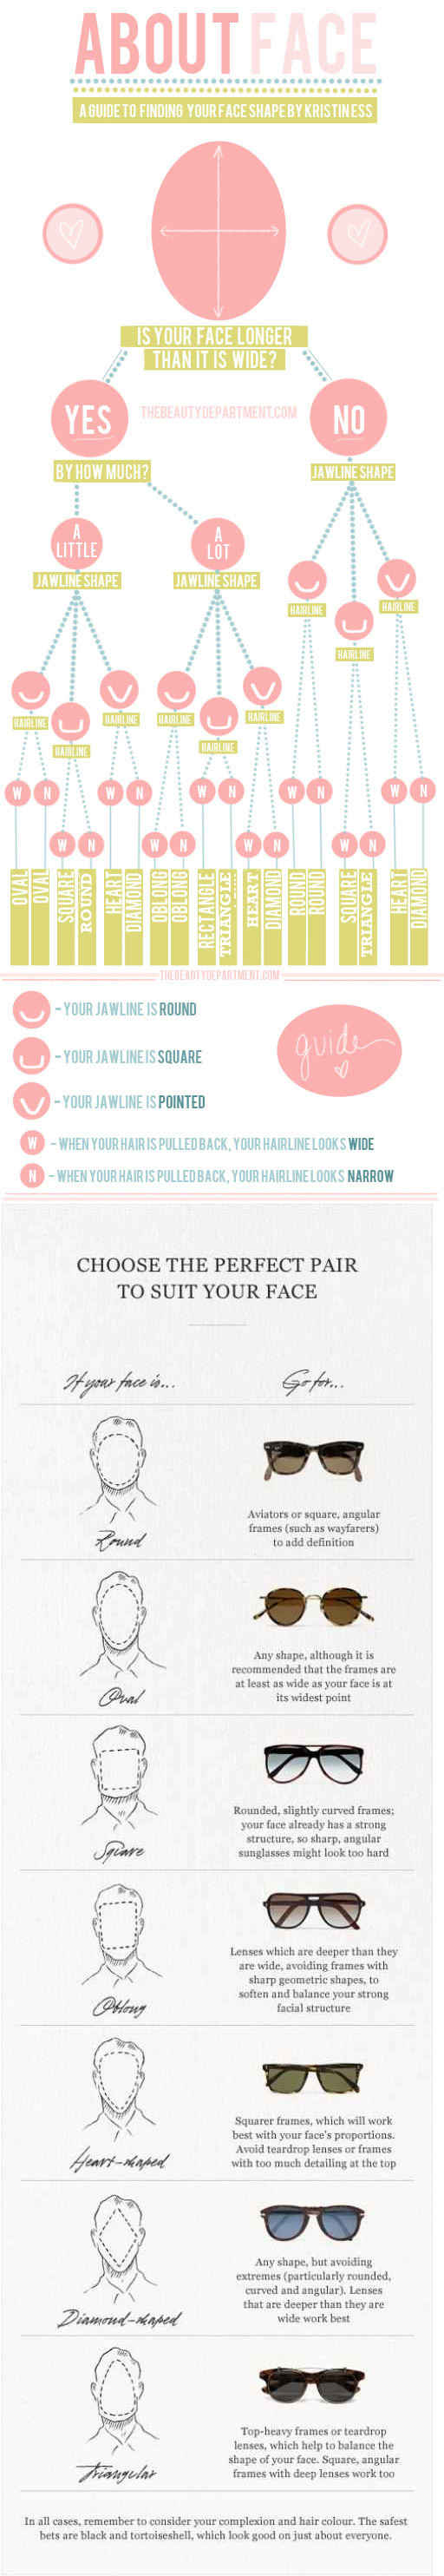 Choosing the perfect sunglasses - a visual guide